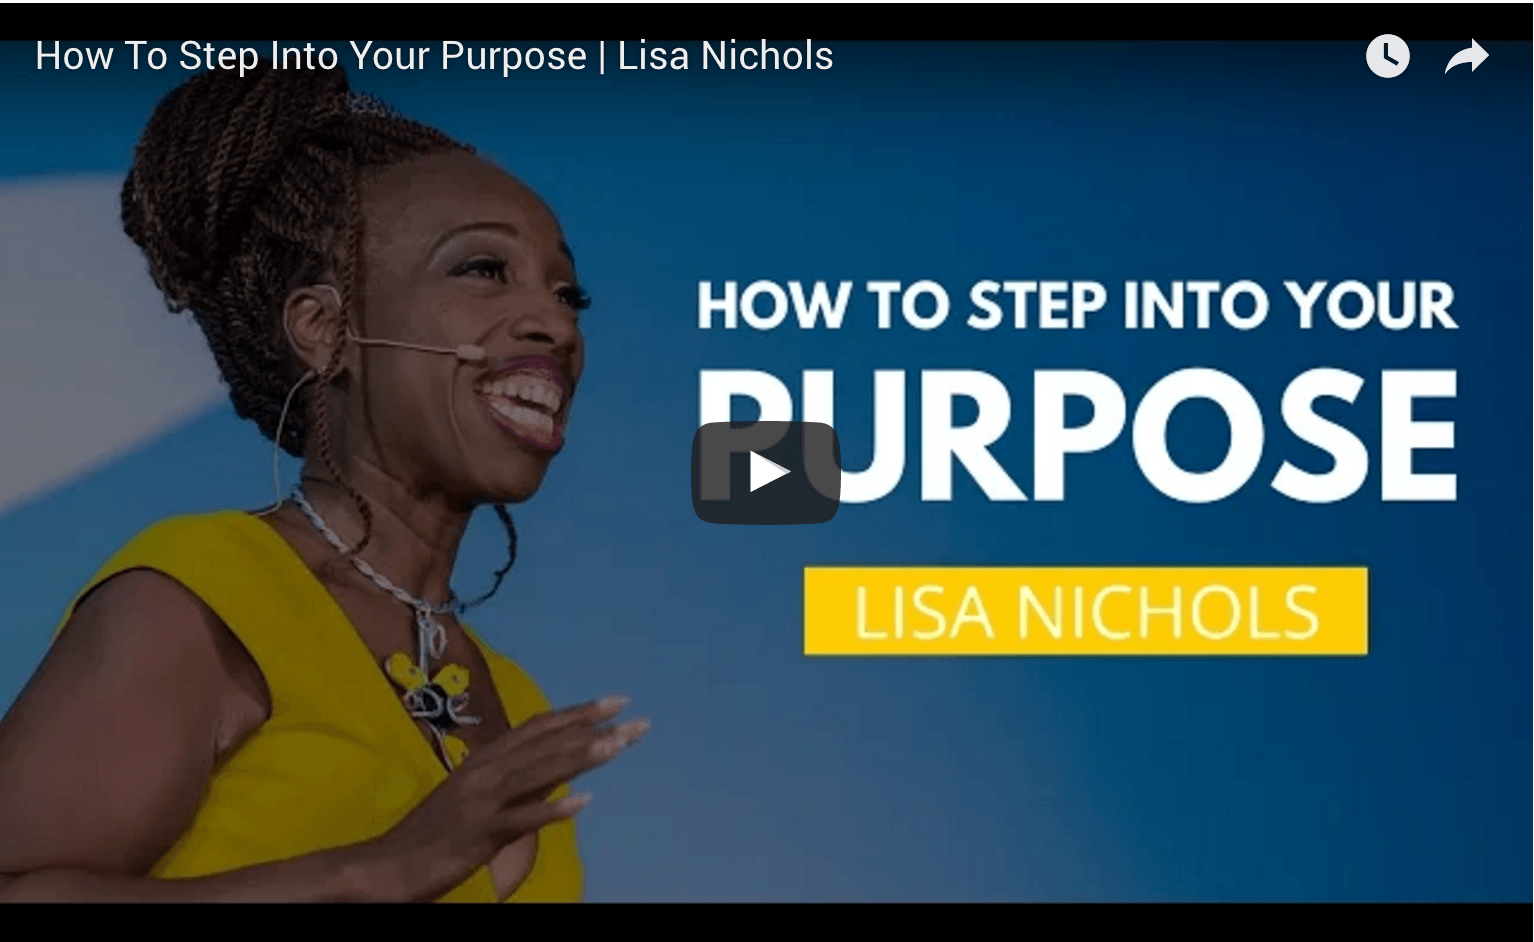 Lisa Nichols Video - How to Step into your Purpose